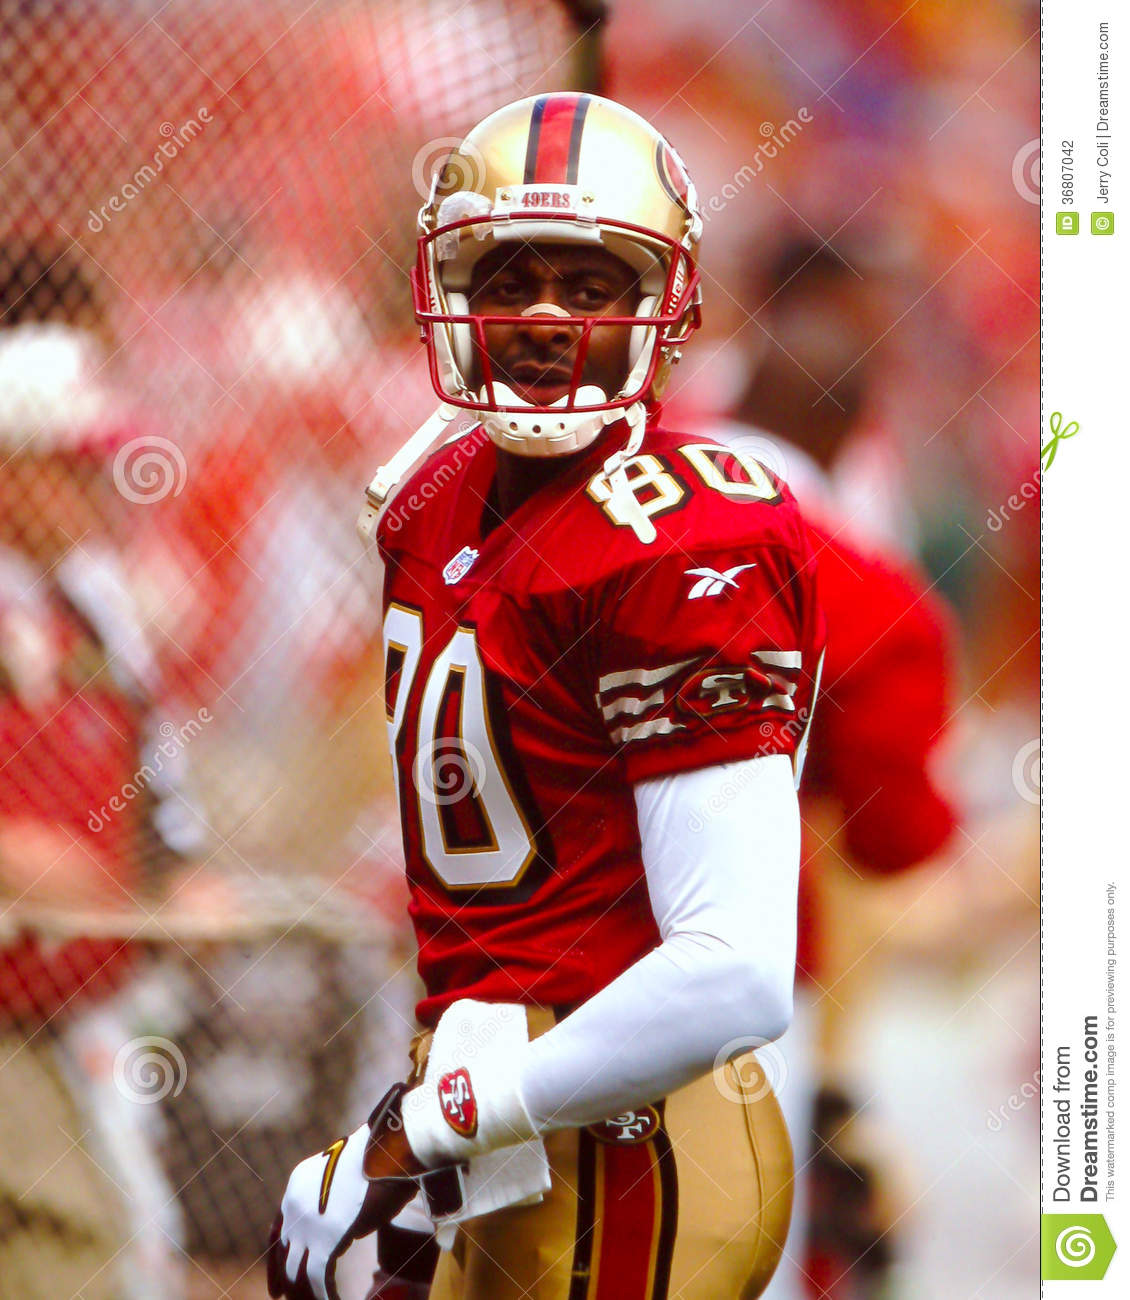 Jerry Rice Editorial Photography Image Of Athlete Helmet